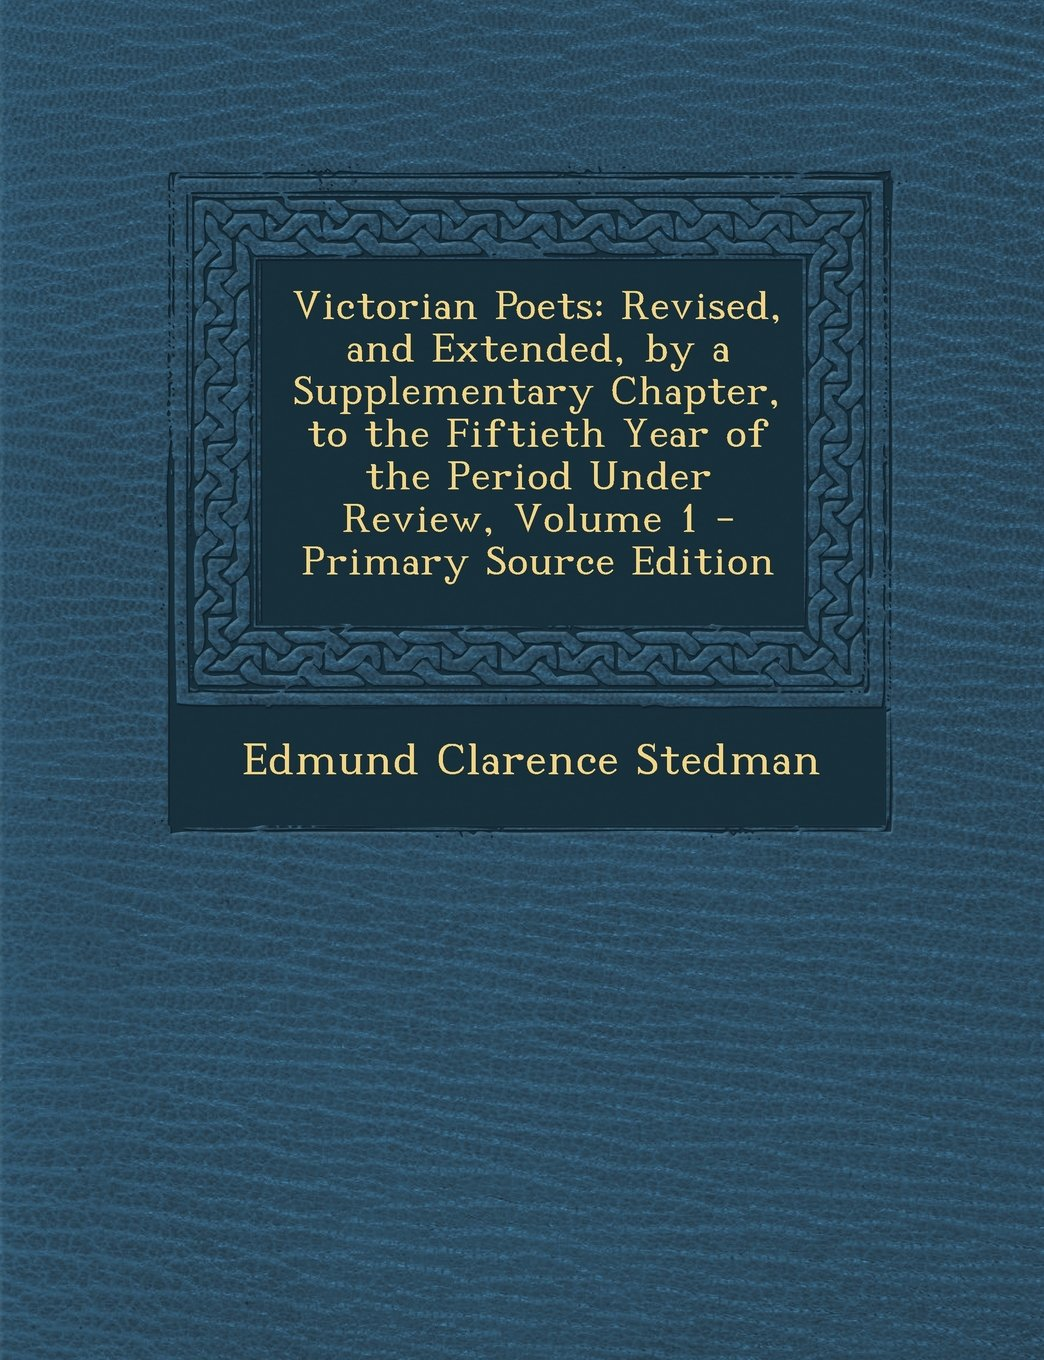 Download Victorian Poets: Revised, and Extended, by a Supplementary Chapter, to the Fiftieth Year of the Period Under Review, Volume 1 pdf epub